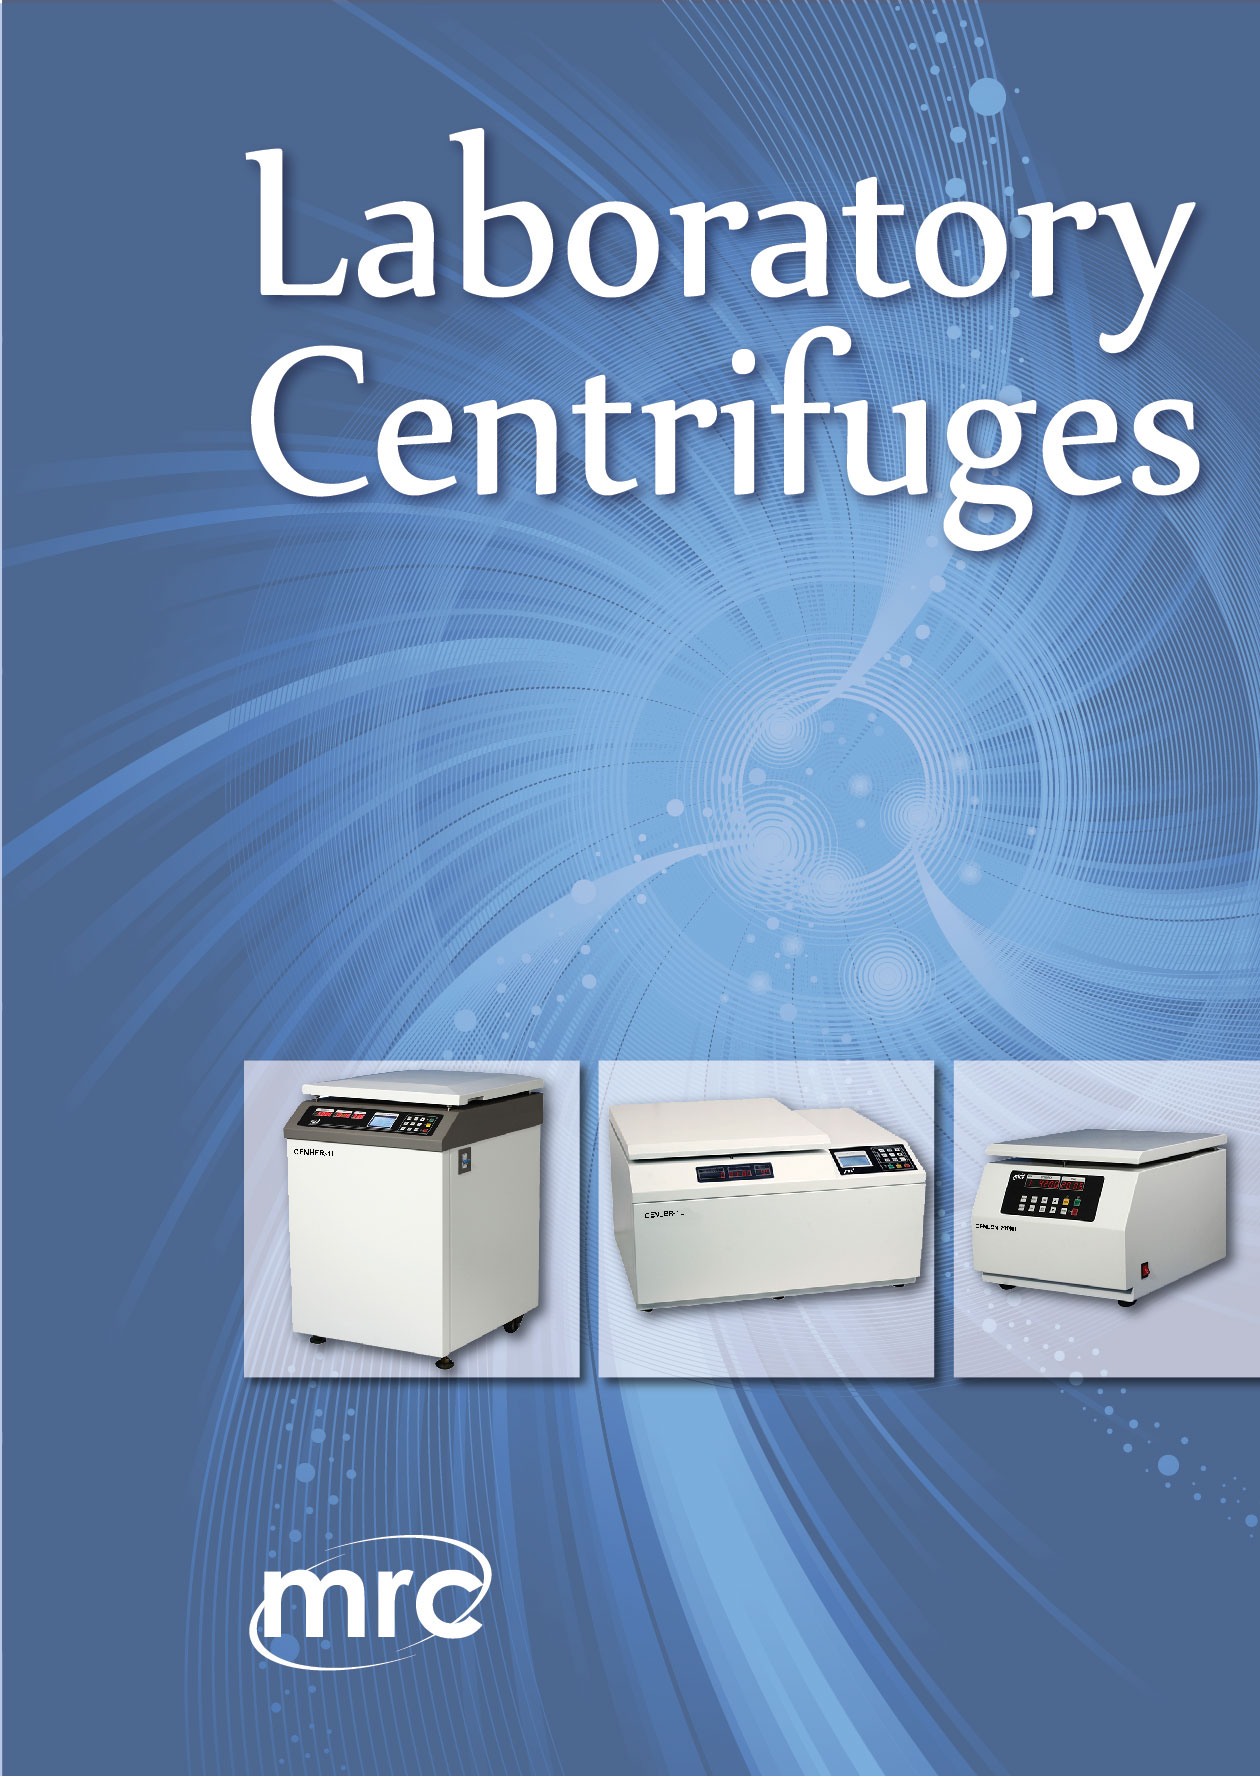 LaboratoryCentrifuges-COVER2017.jpg